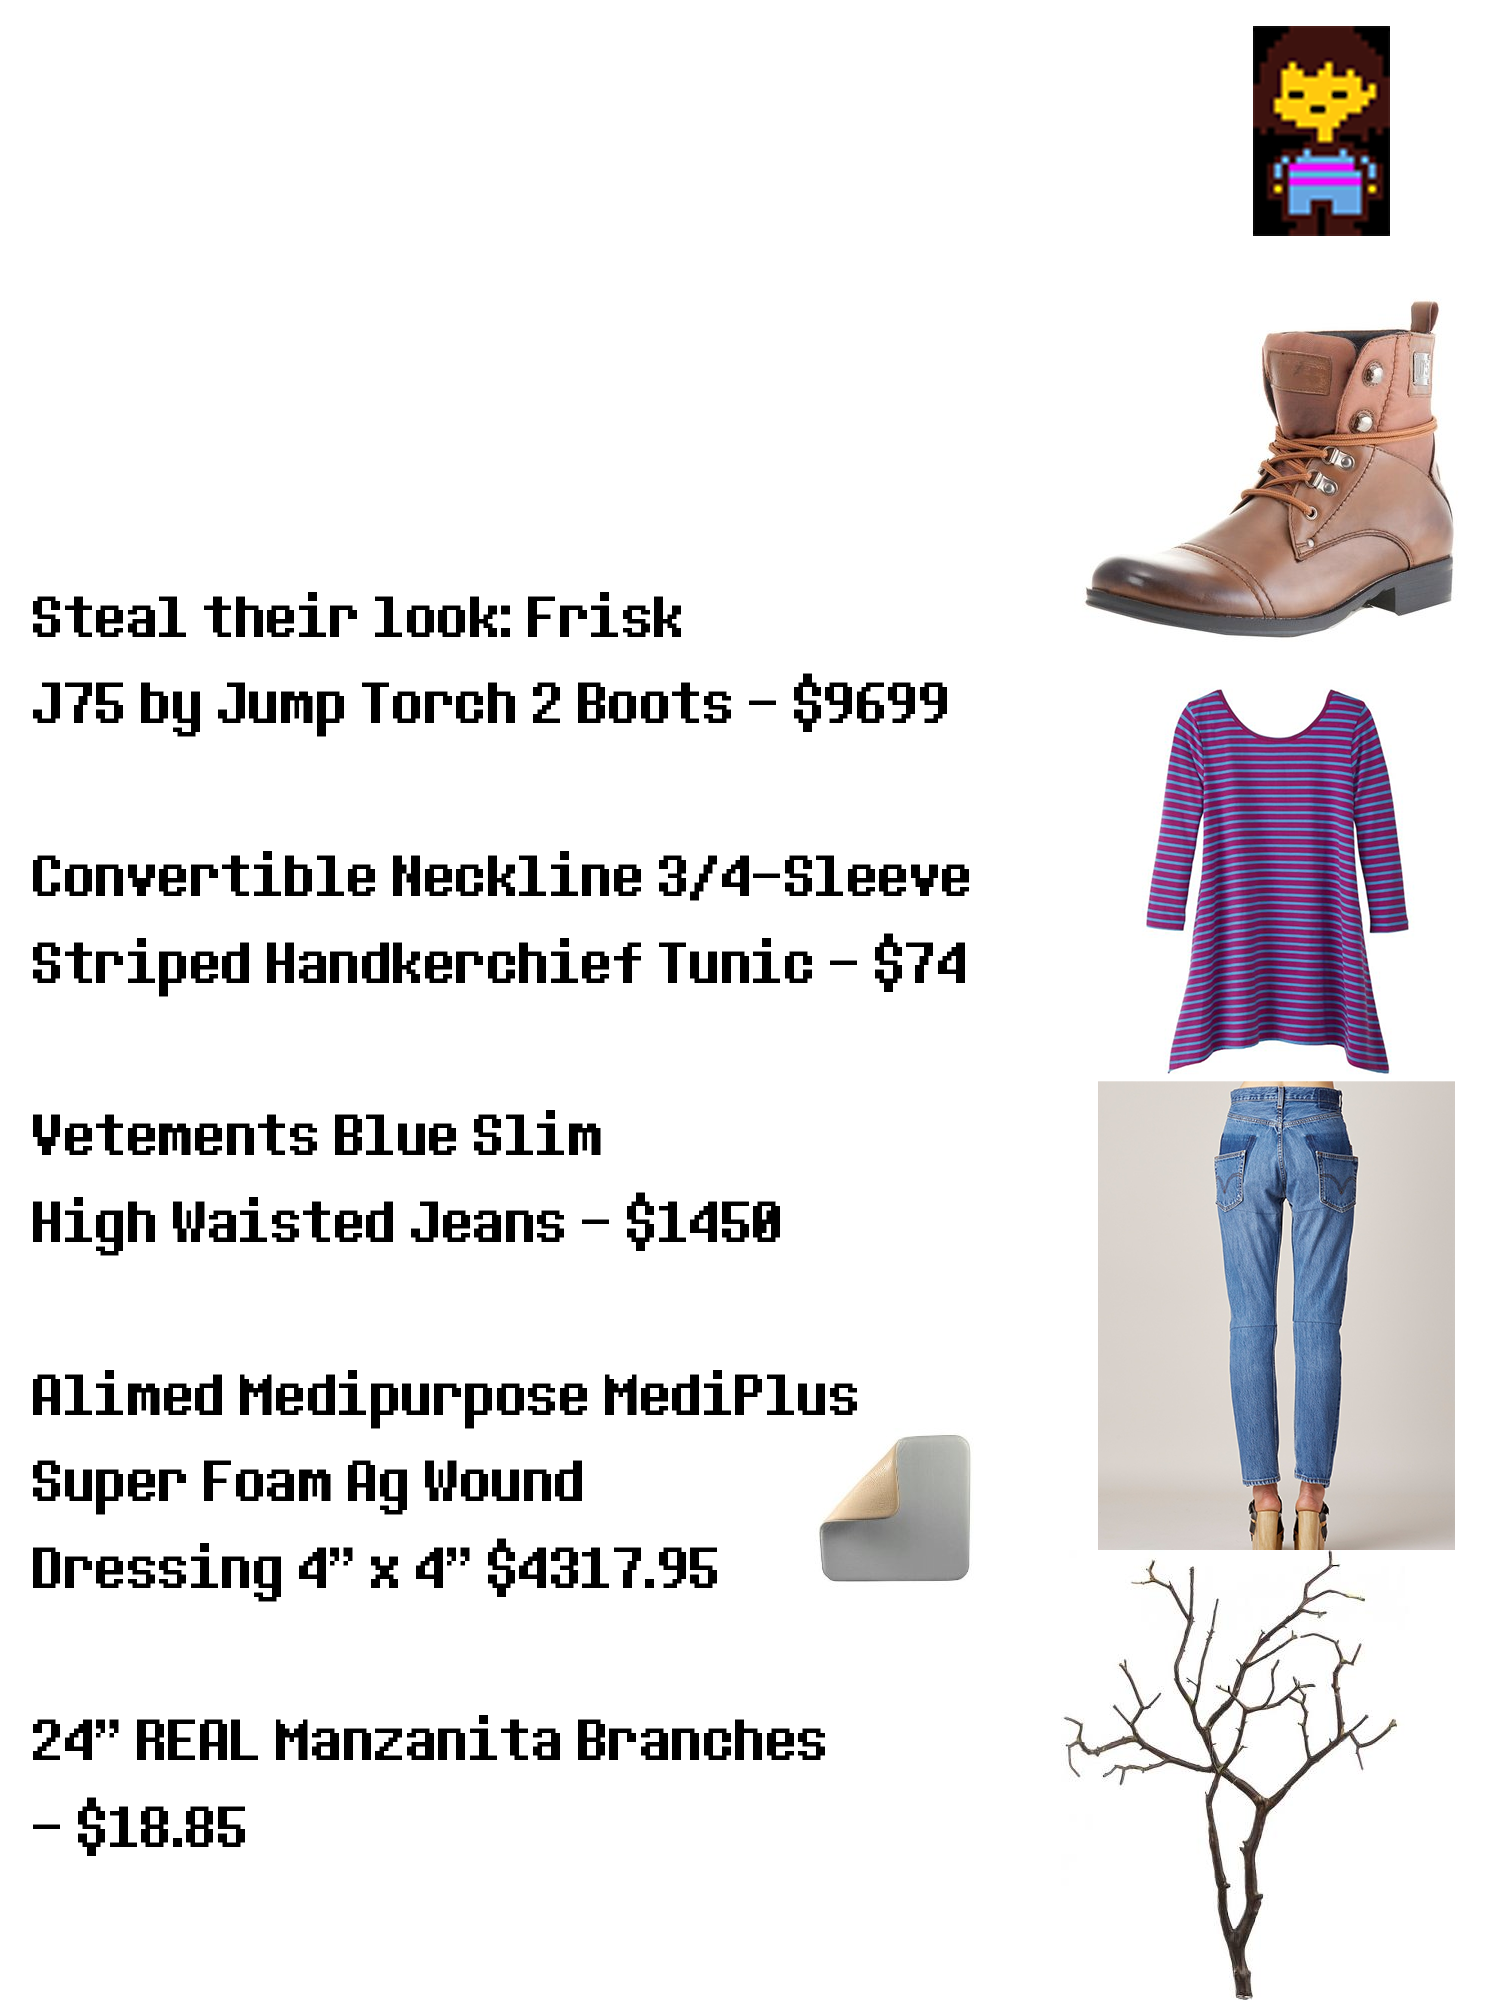 Steal Their Look Frisk Undertale Know Your Meme